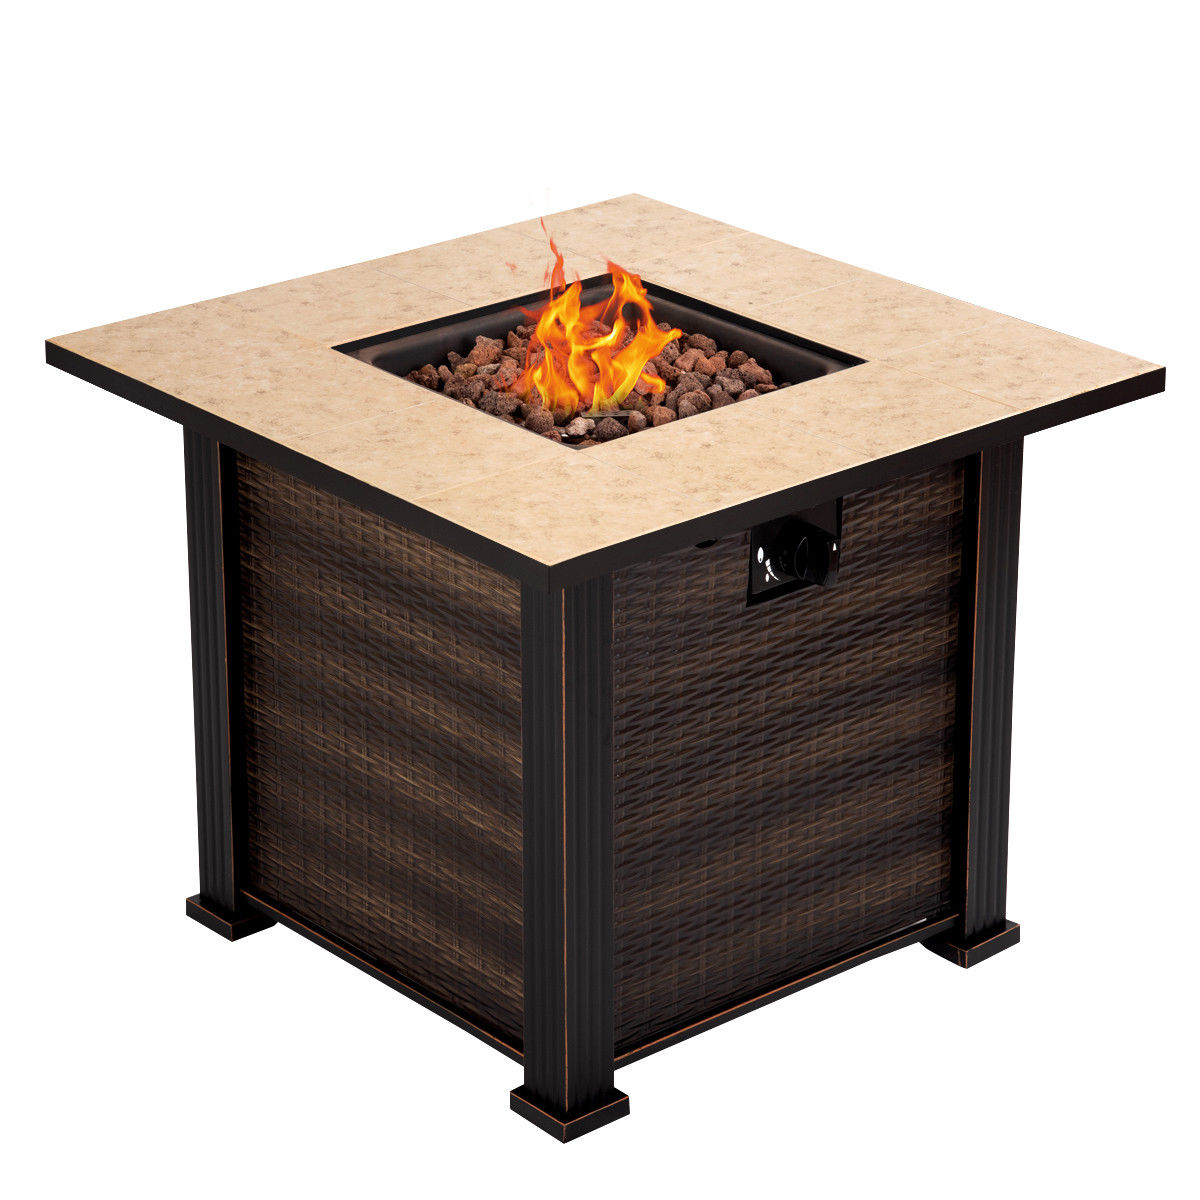 "Costway 30"" Square Propane Gas Fire Pit 50000 BTUs Heater Outdoor Table Fireplace Cover"